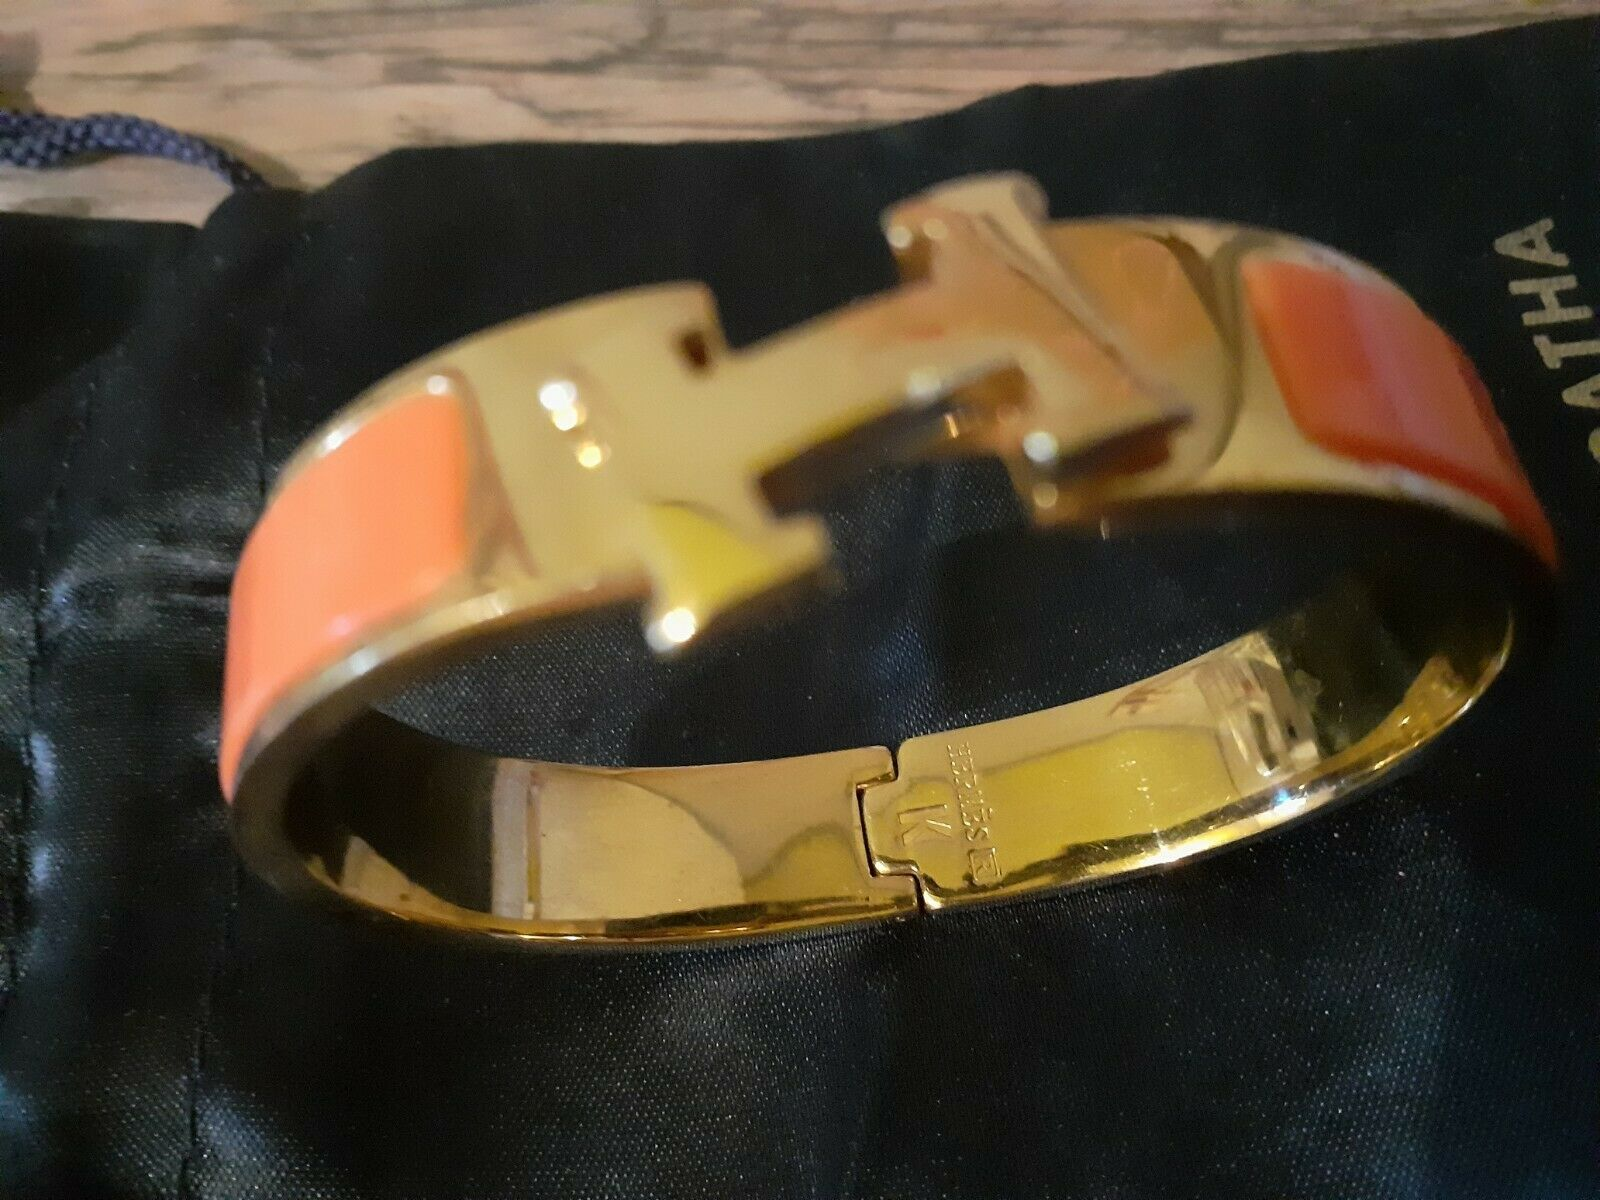 Hermes bracelet clic clac h orange diametre 6 cm largueur 11 mm